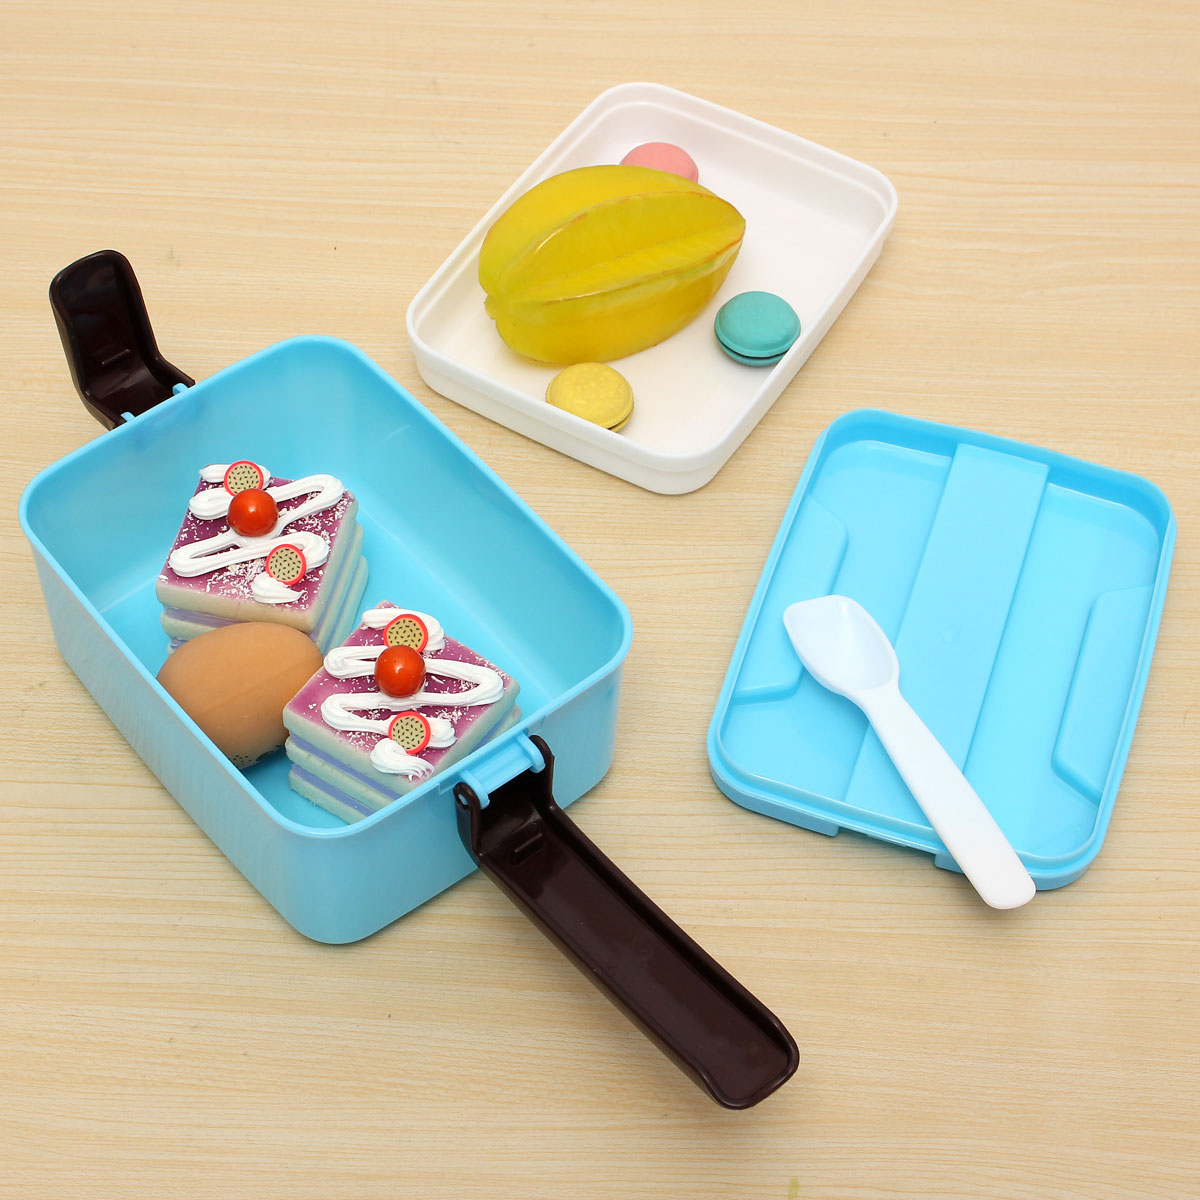 separated portable bento lunch box food storage containers. Black Bedroom Furniture Sets. Home Design Ideas